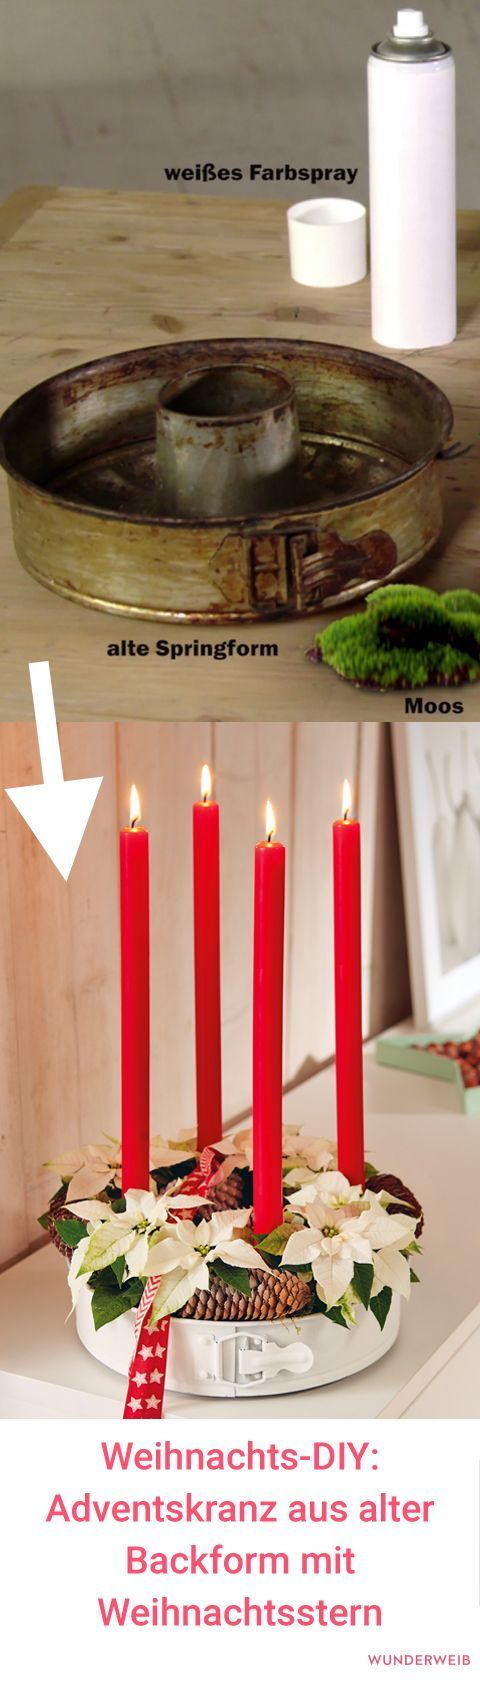 Photo of DIY decoration for Christmas: tinker advent wreath from old baking tin | Wonder woman